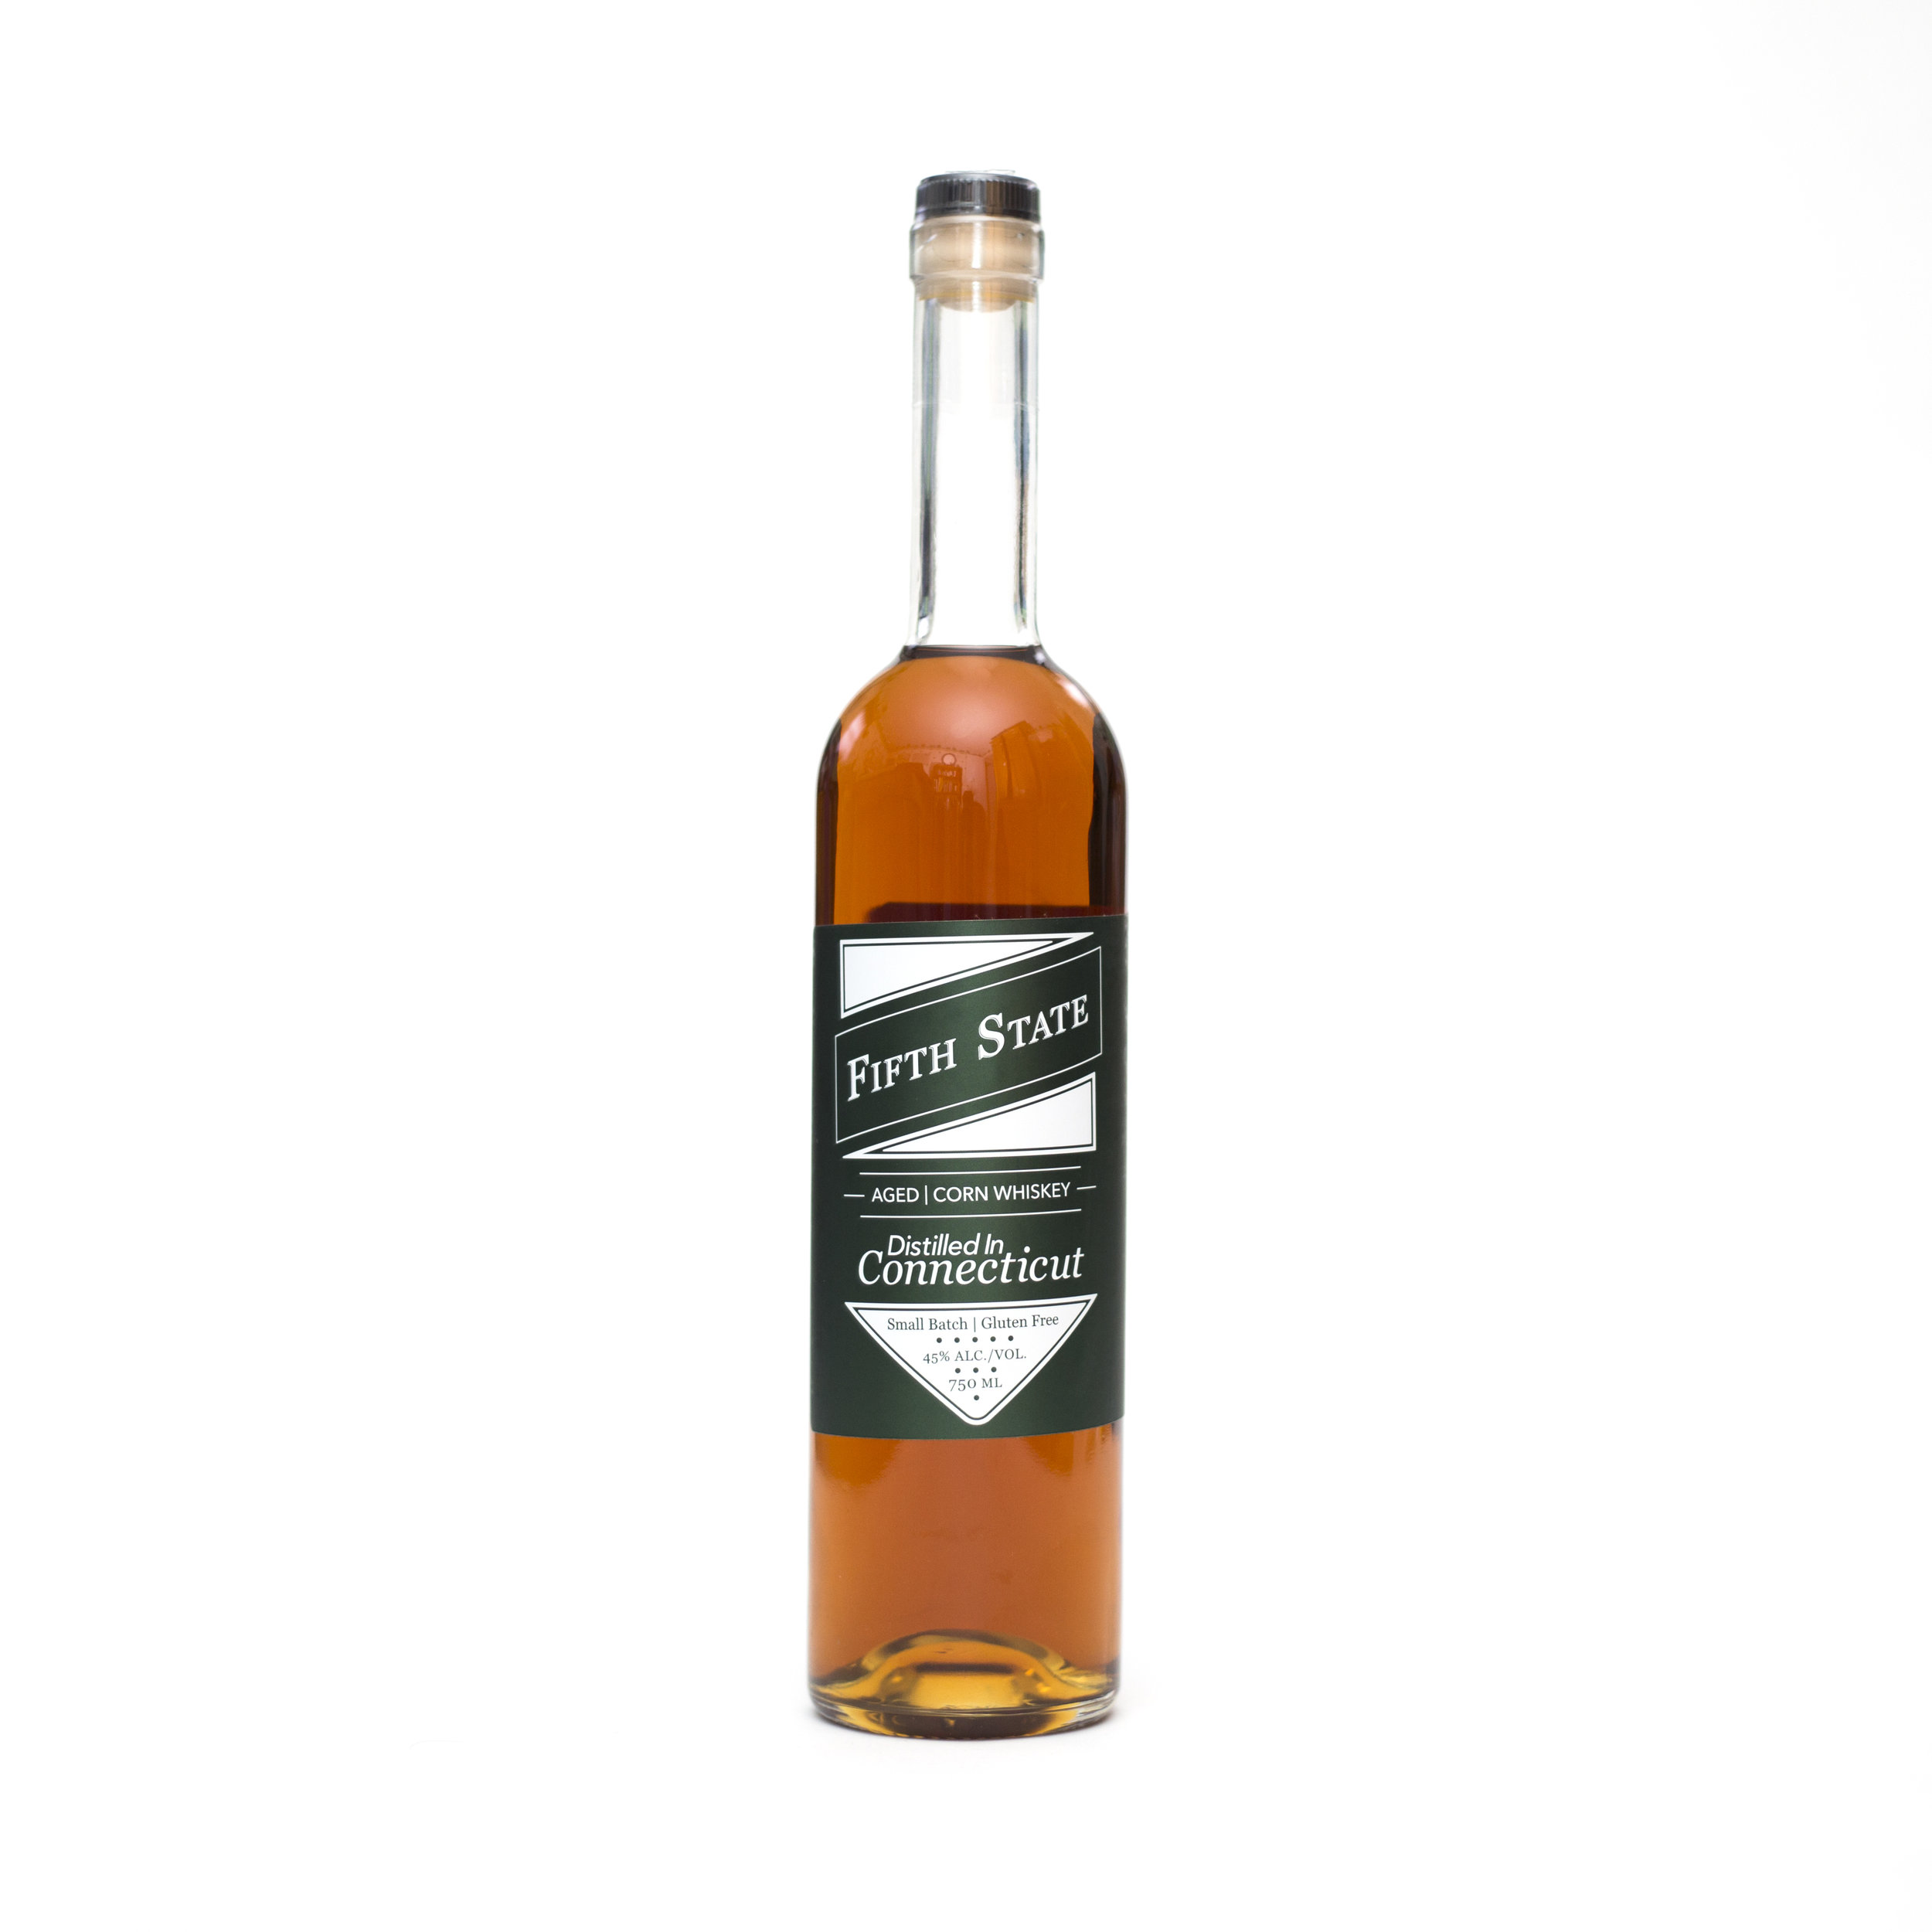 fifth state whiskey